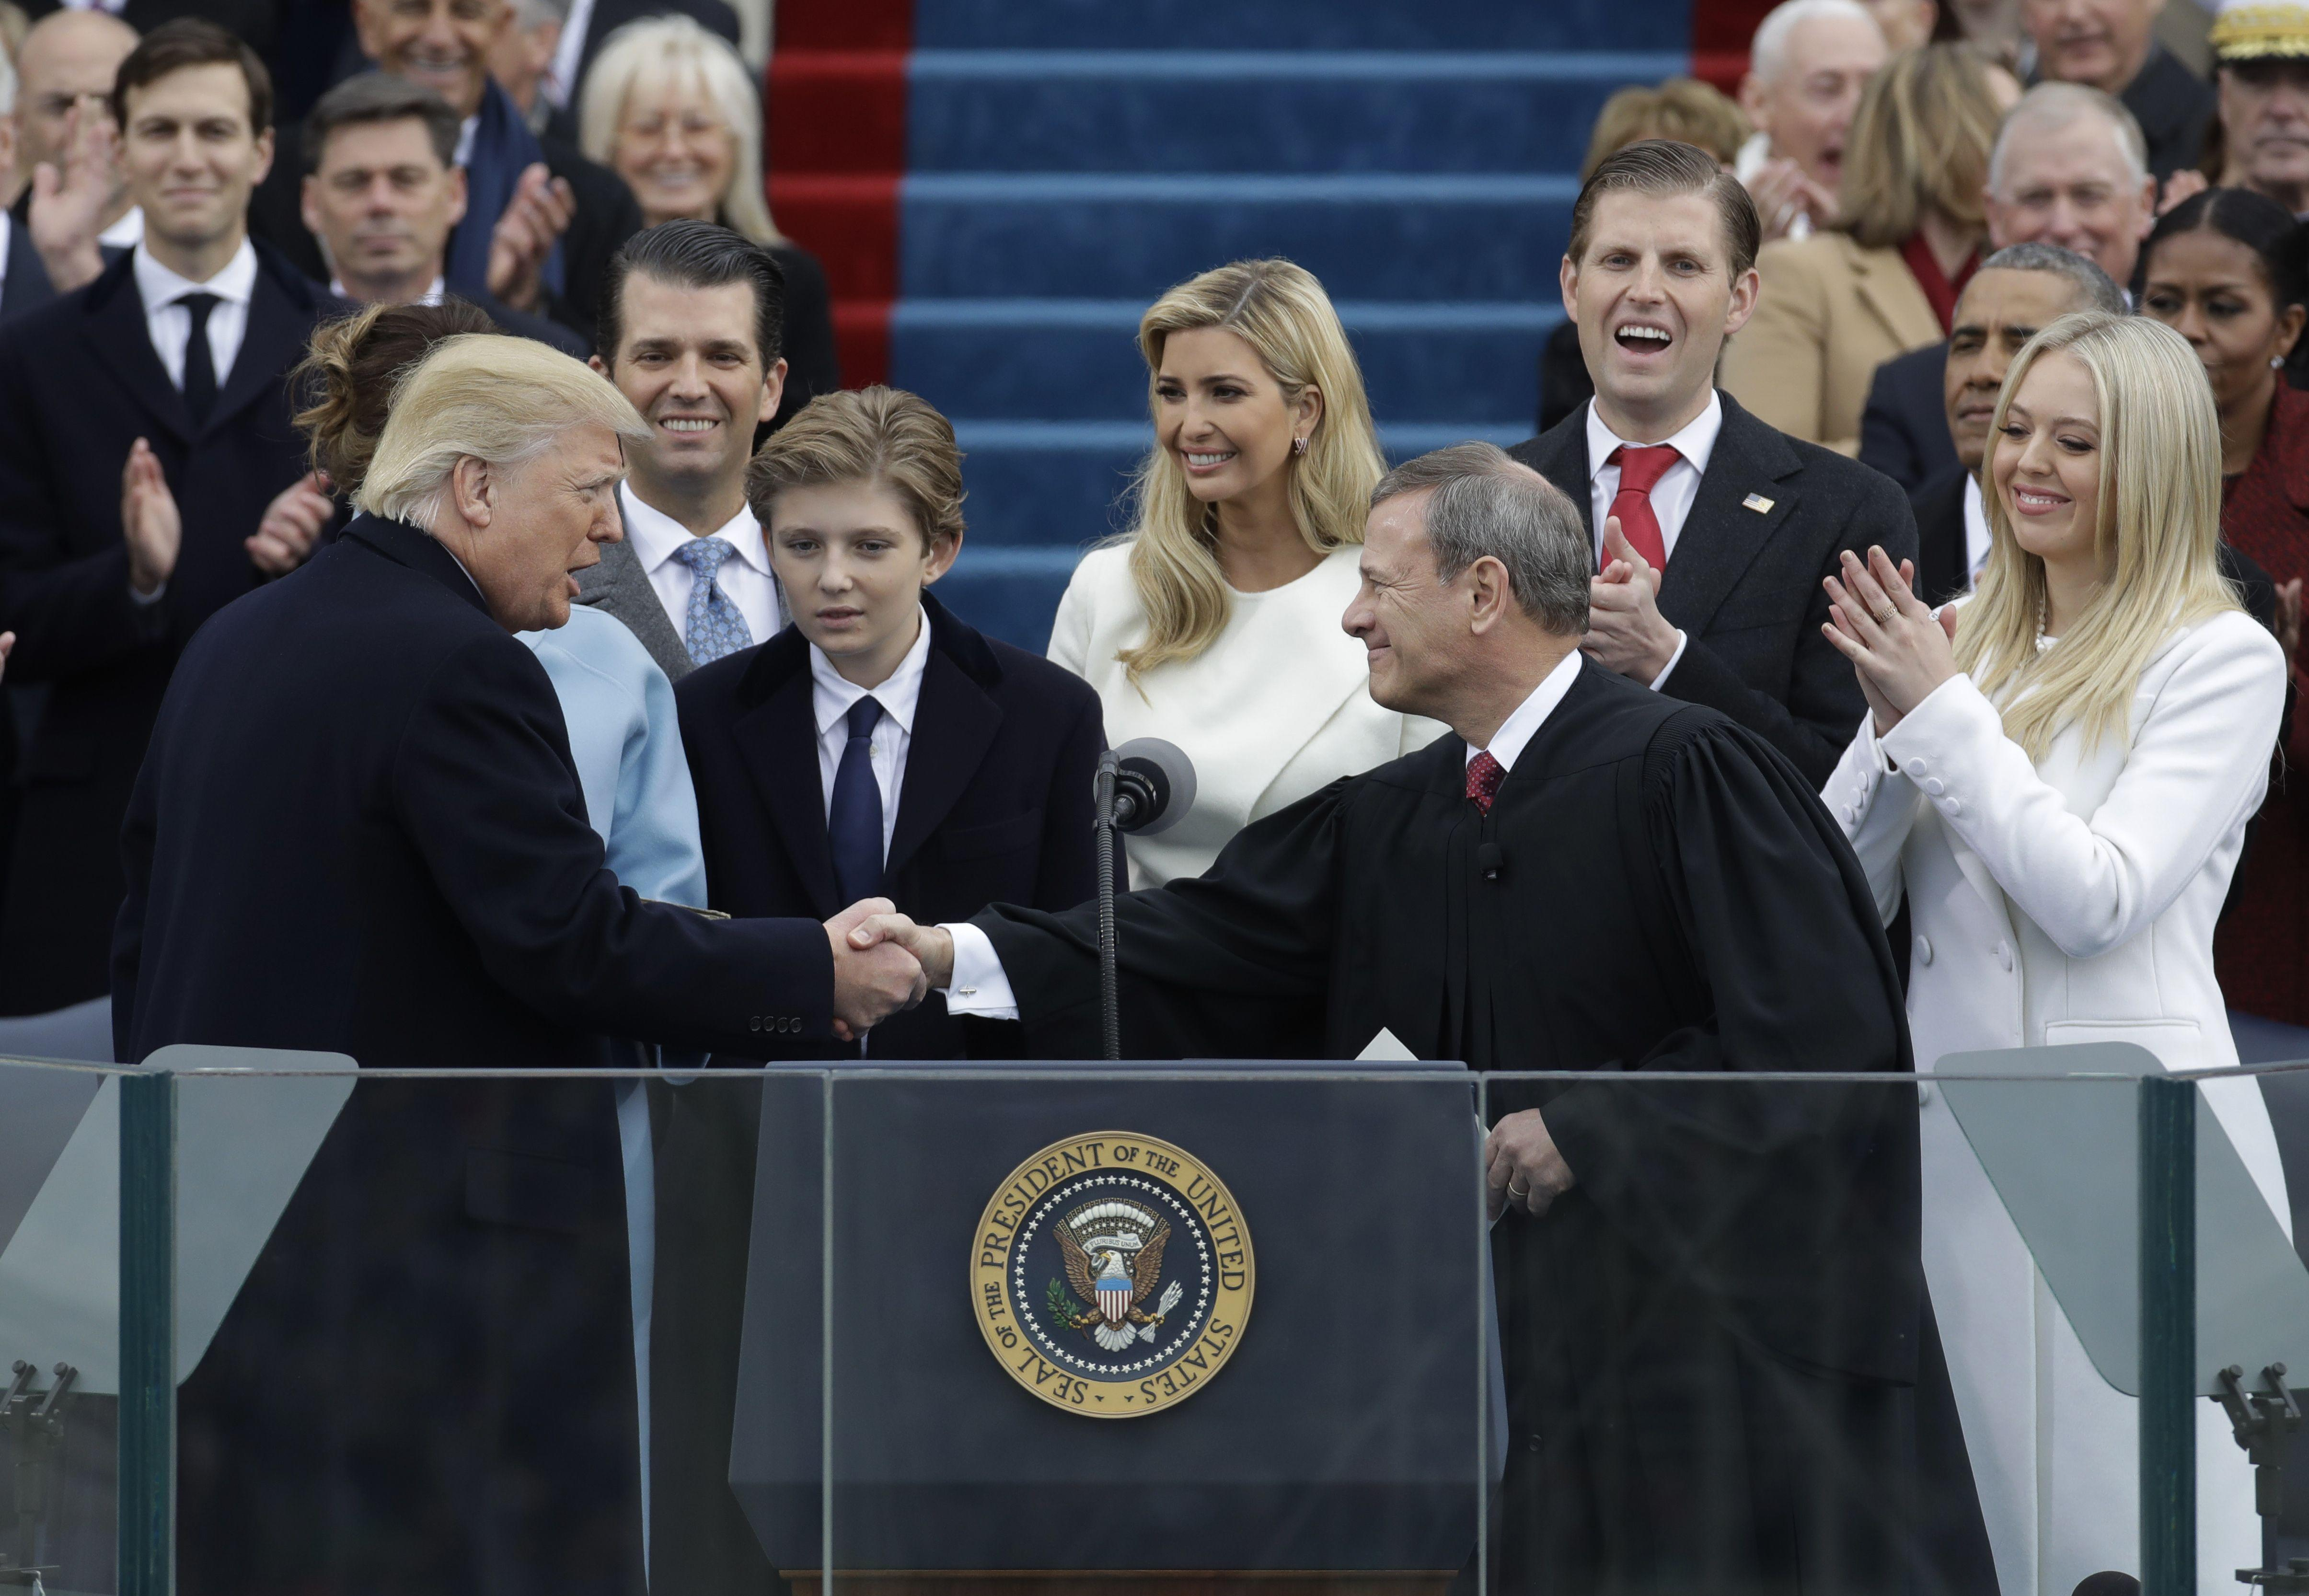 NBC News Leads Broadcast TV Viewing On Inauguration Day With 5.8M Tuned In